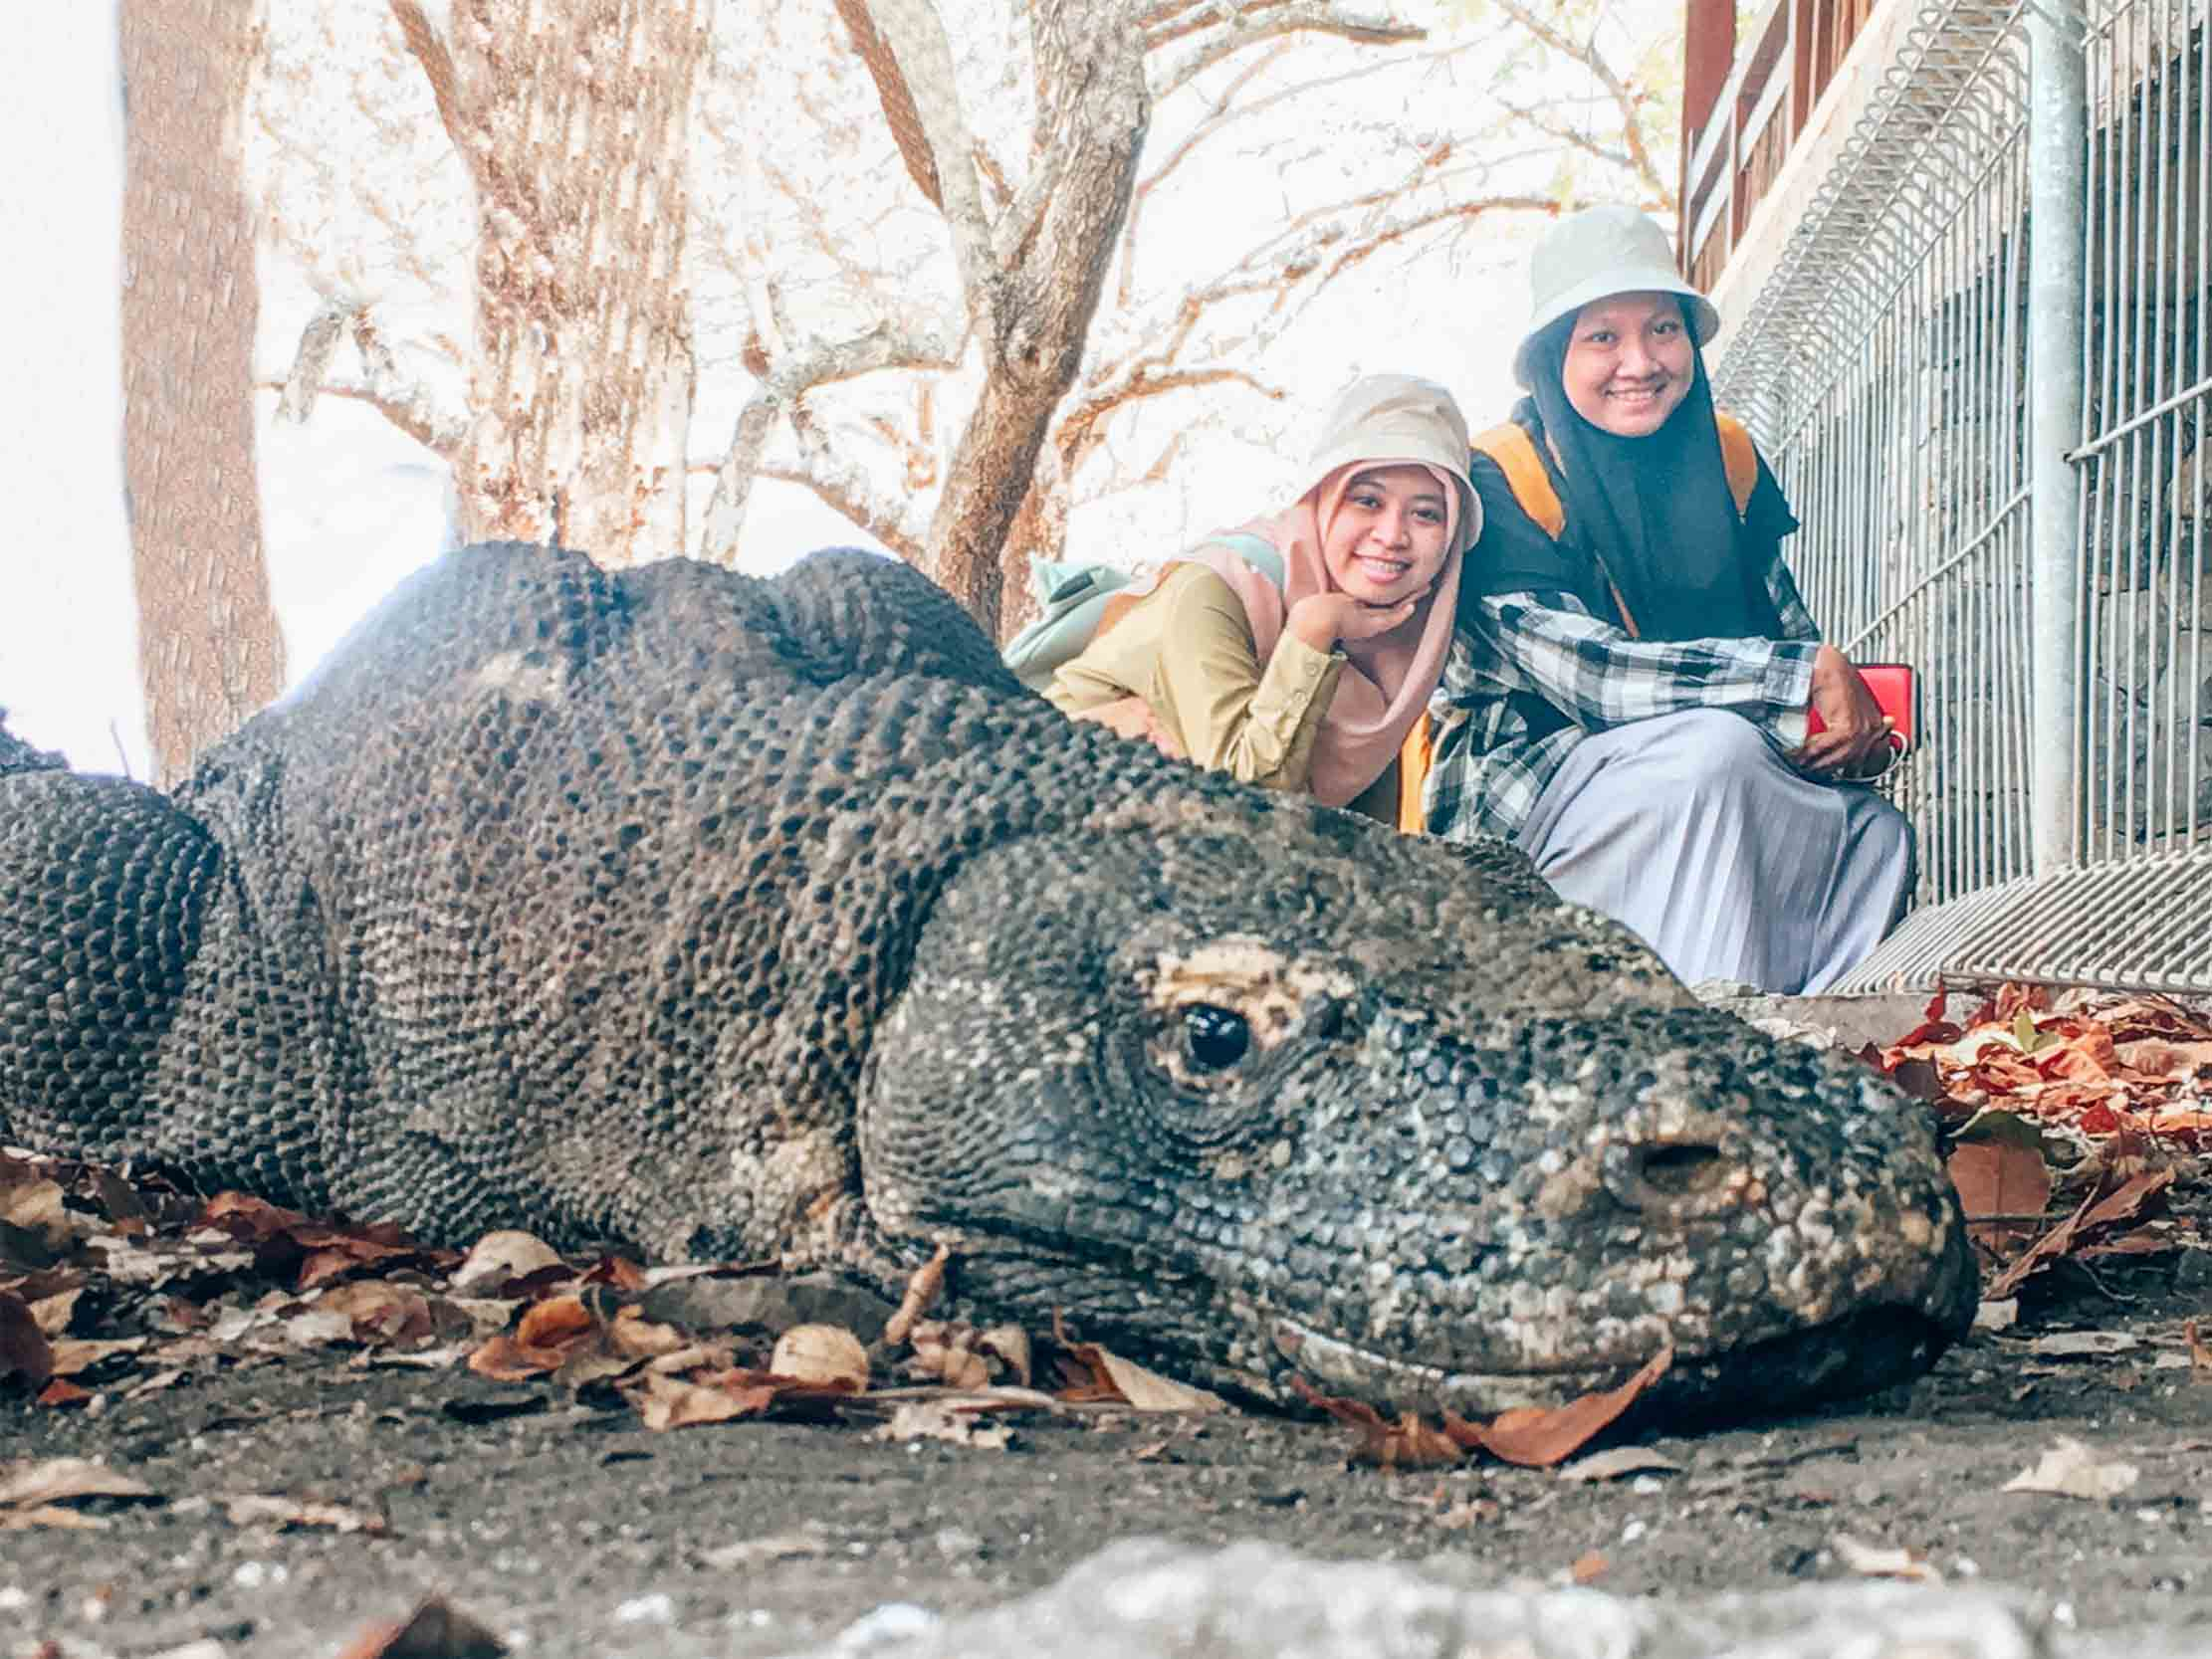 We found you! bapak Komodo. Lucu, tapi buas...